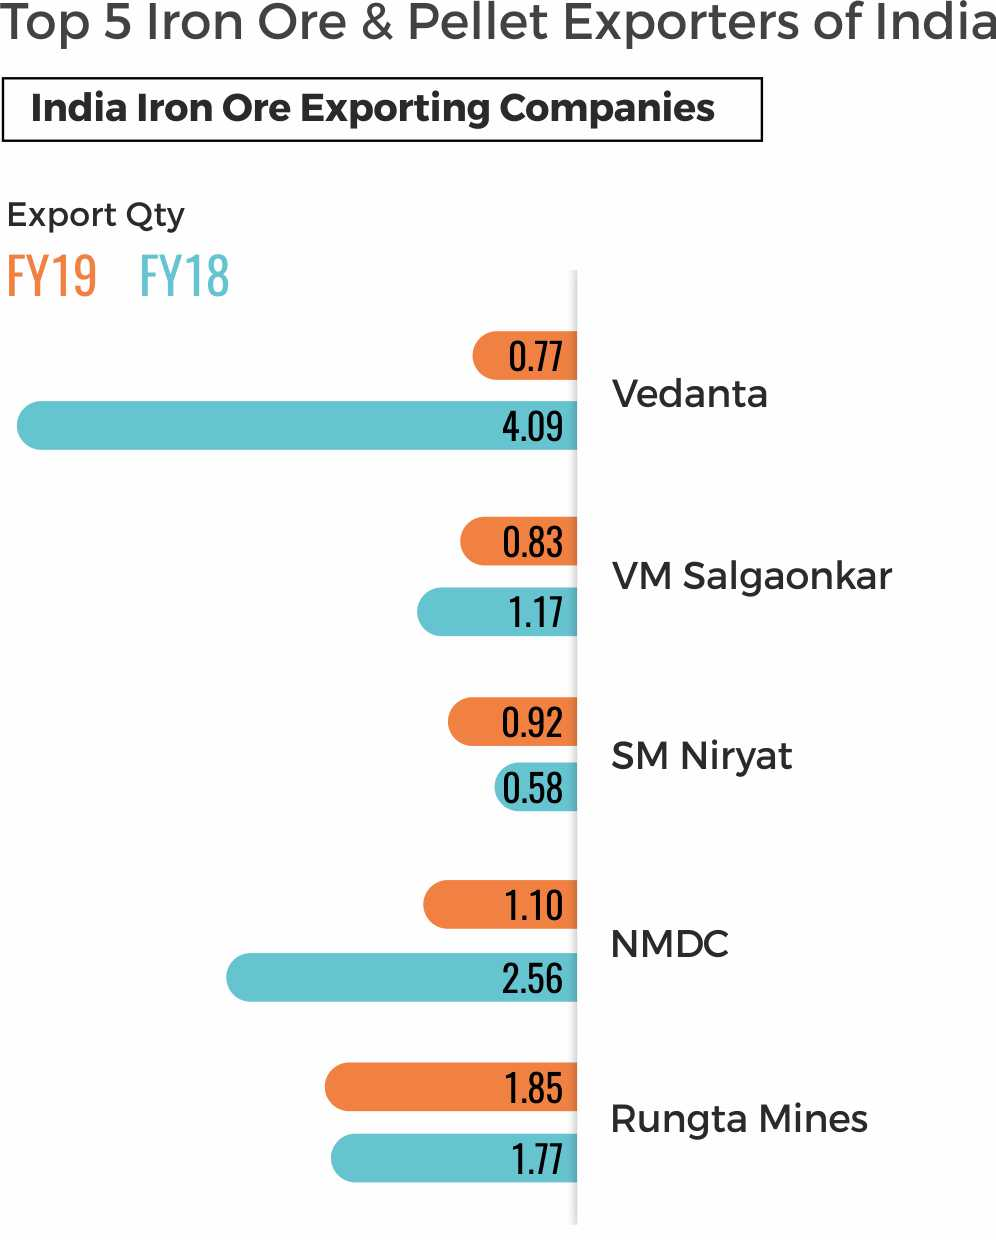 India's top Iron ore exporting Companies